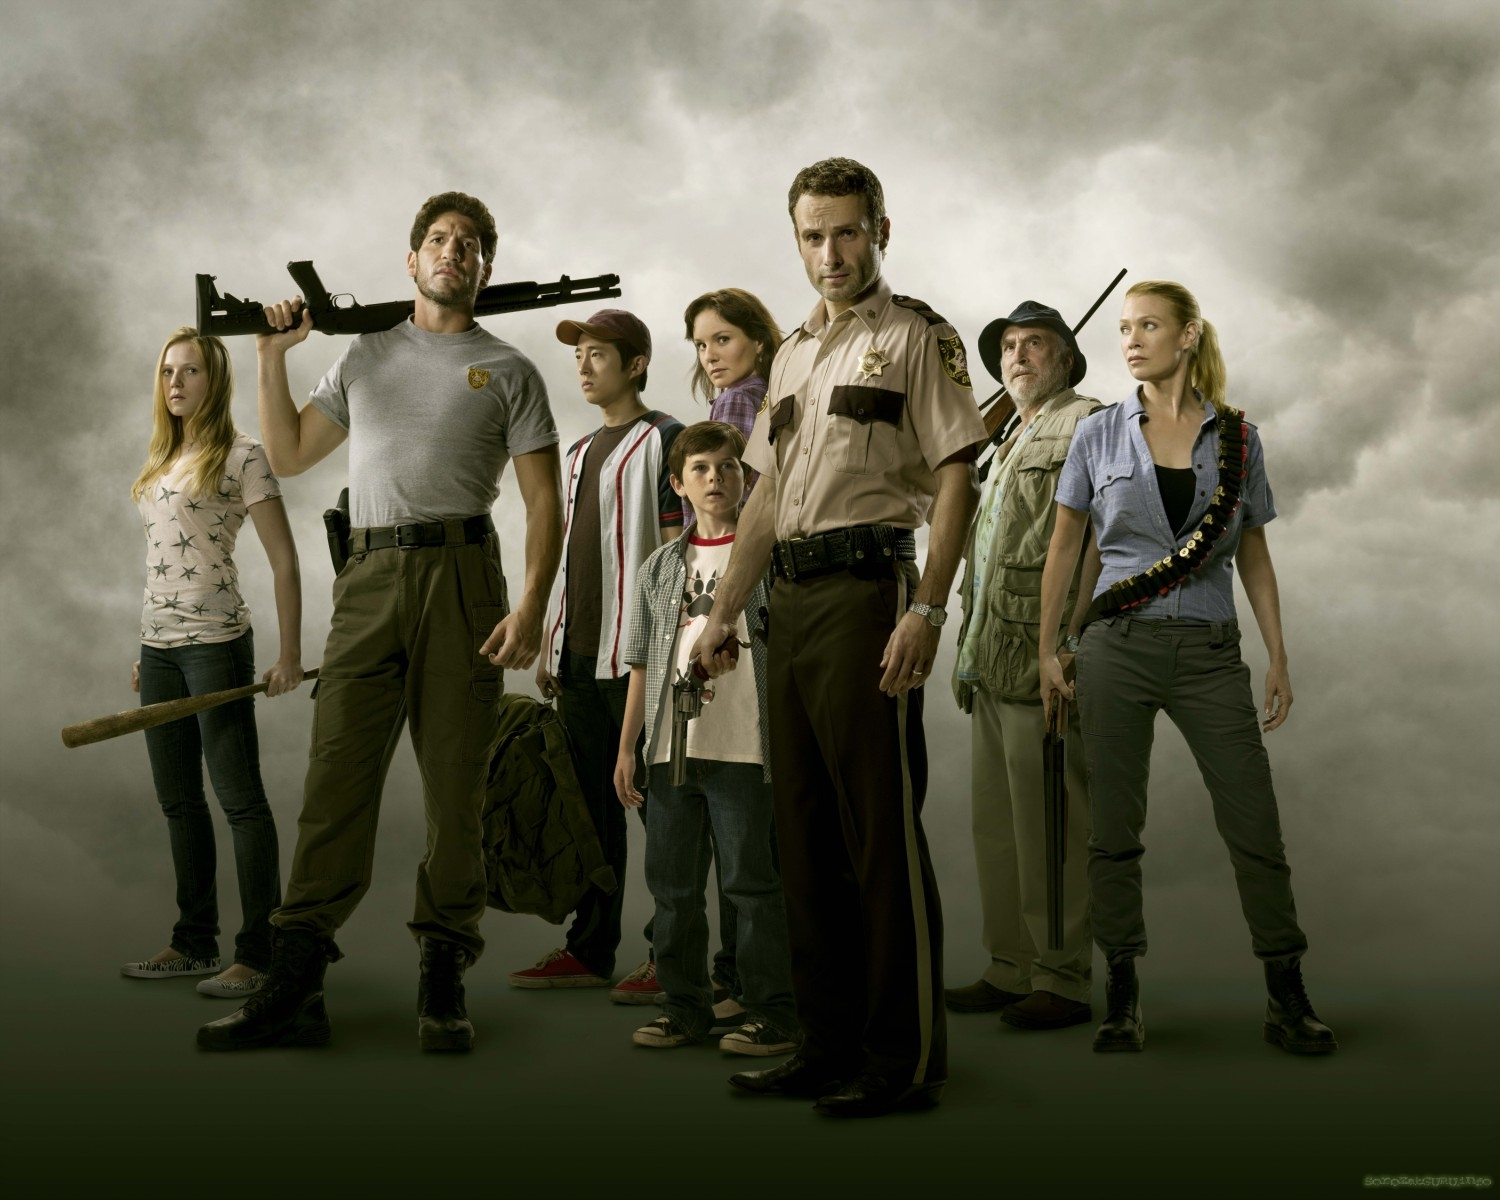 walking-dead-photo-promo-s1